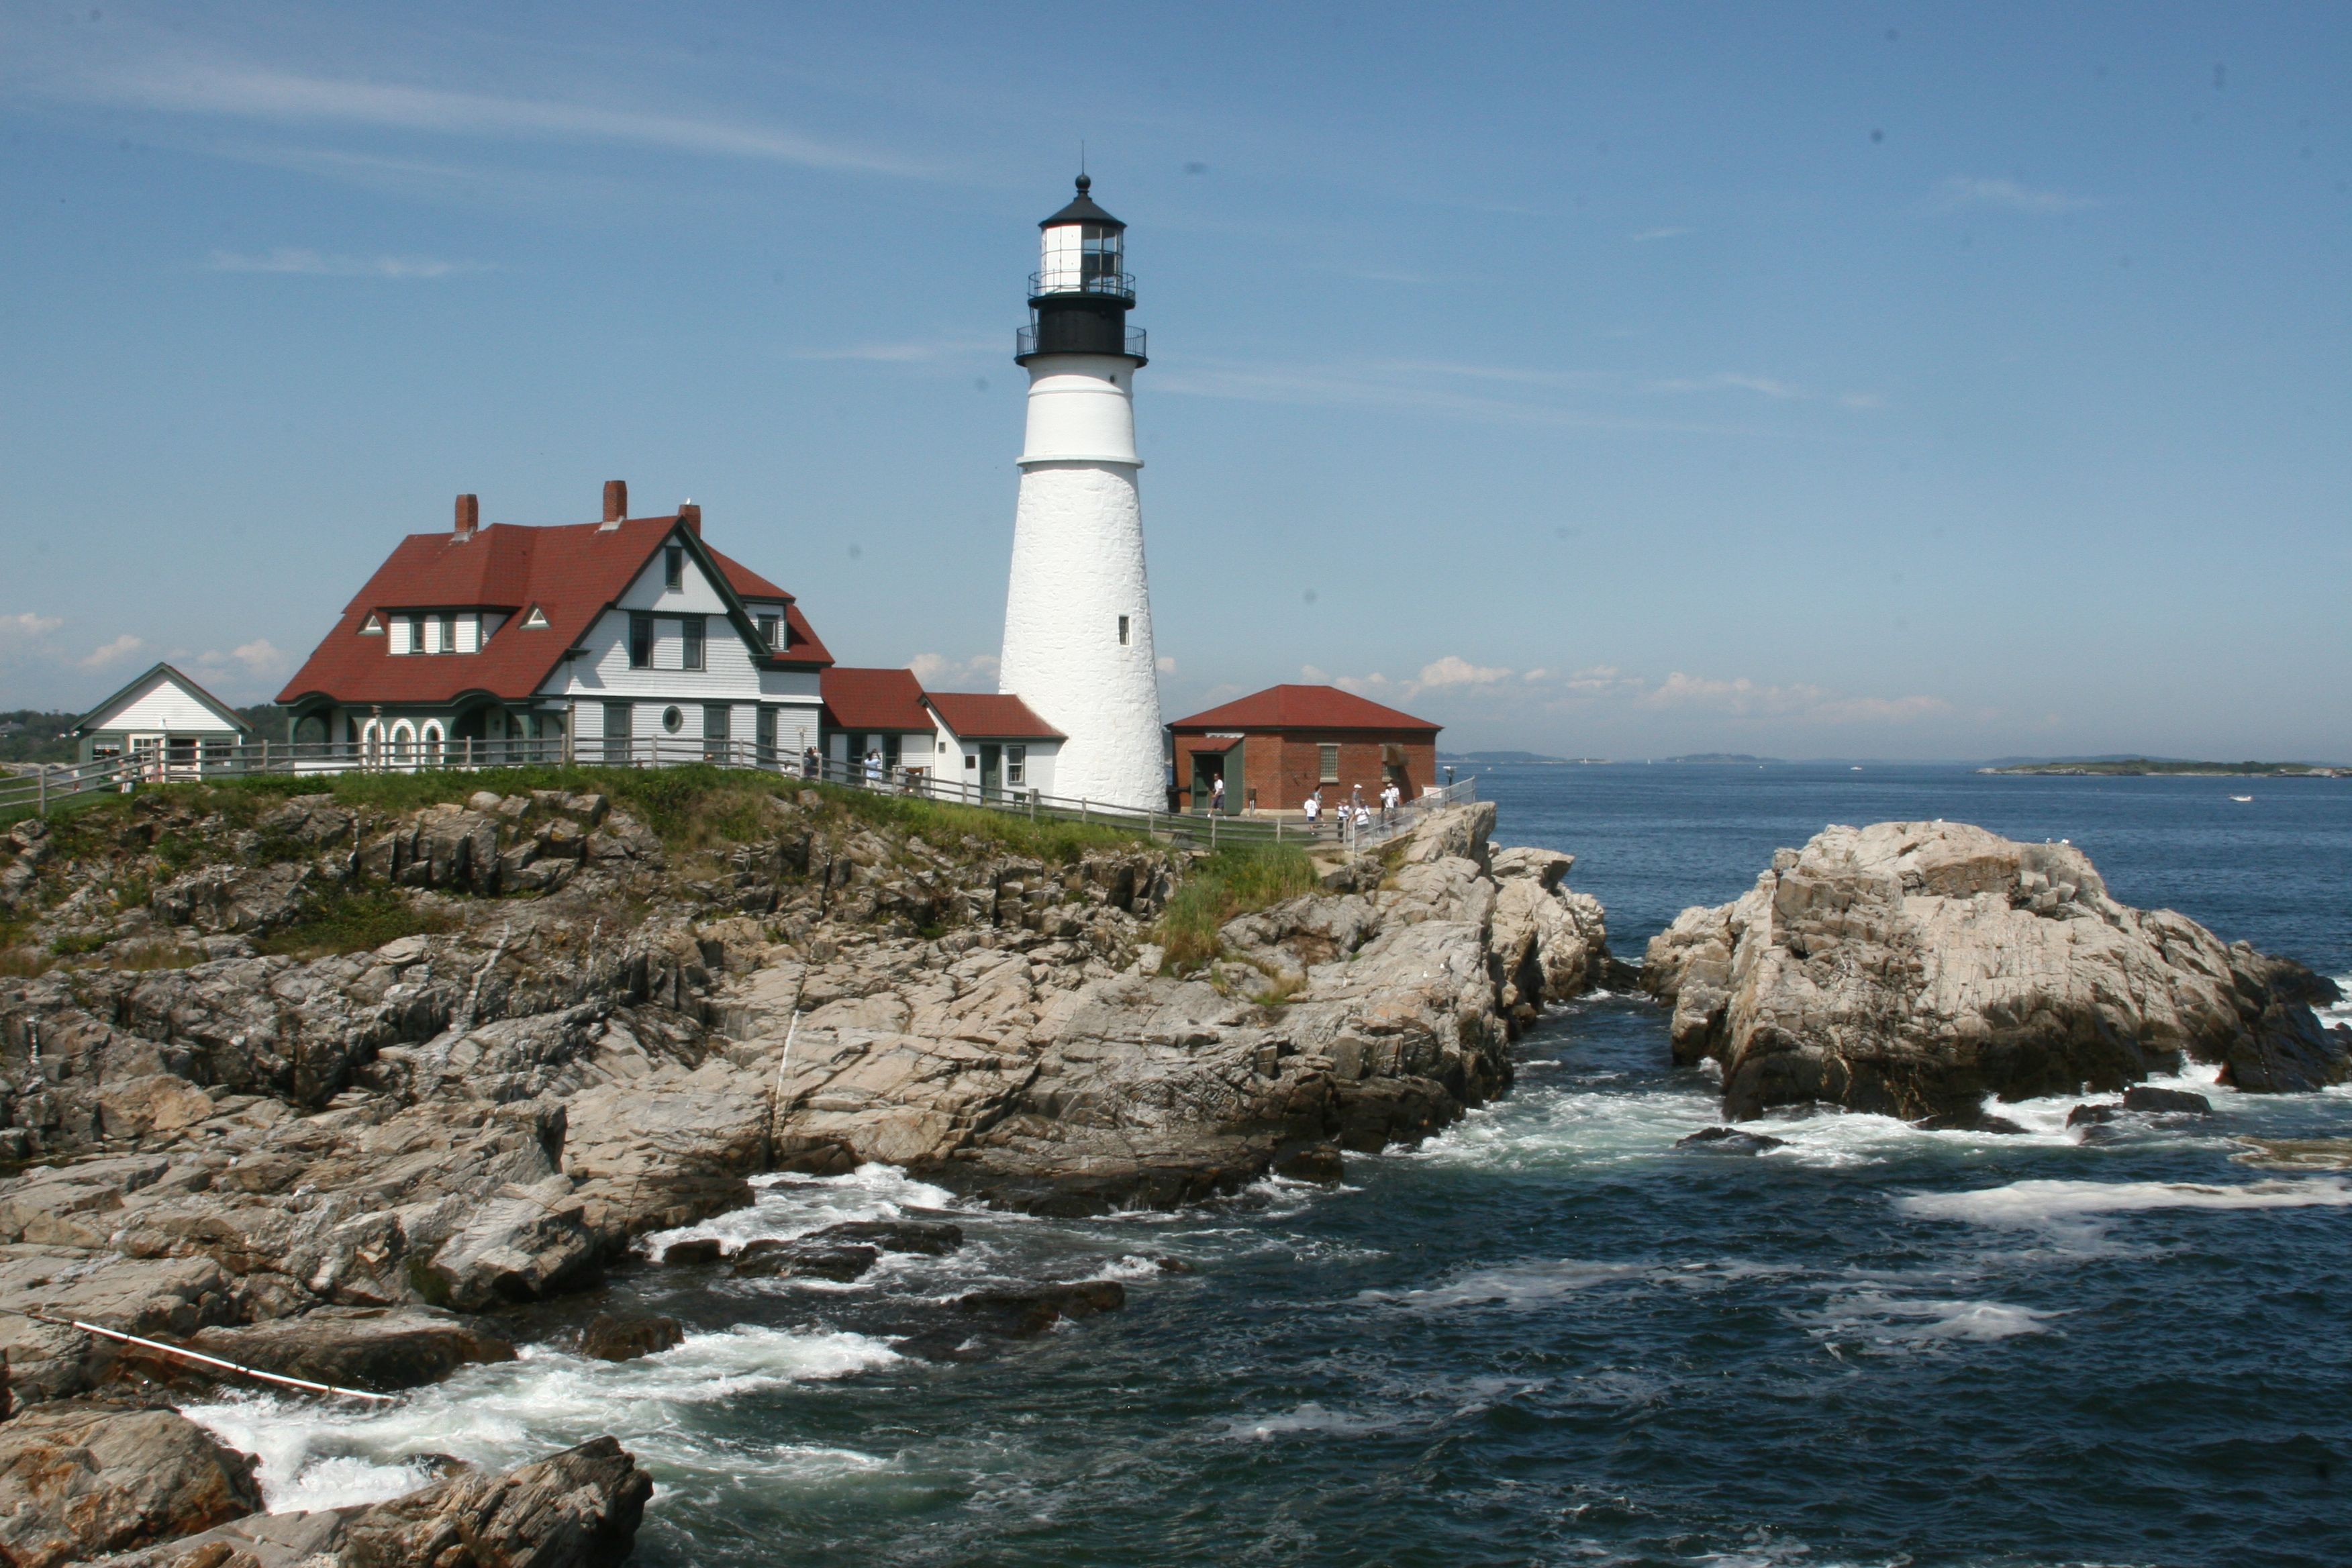 portland head lighthouse portland me august 22 2012 img 8653jpg 3504x2336